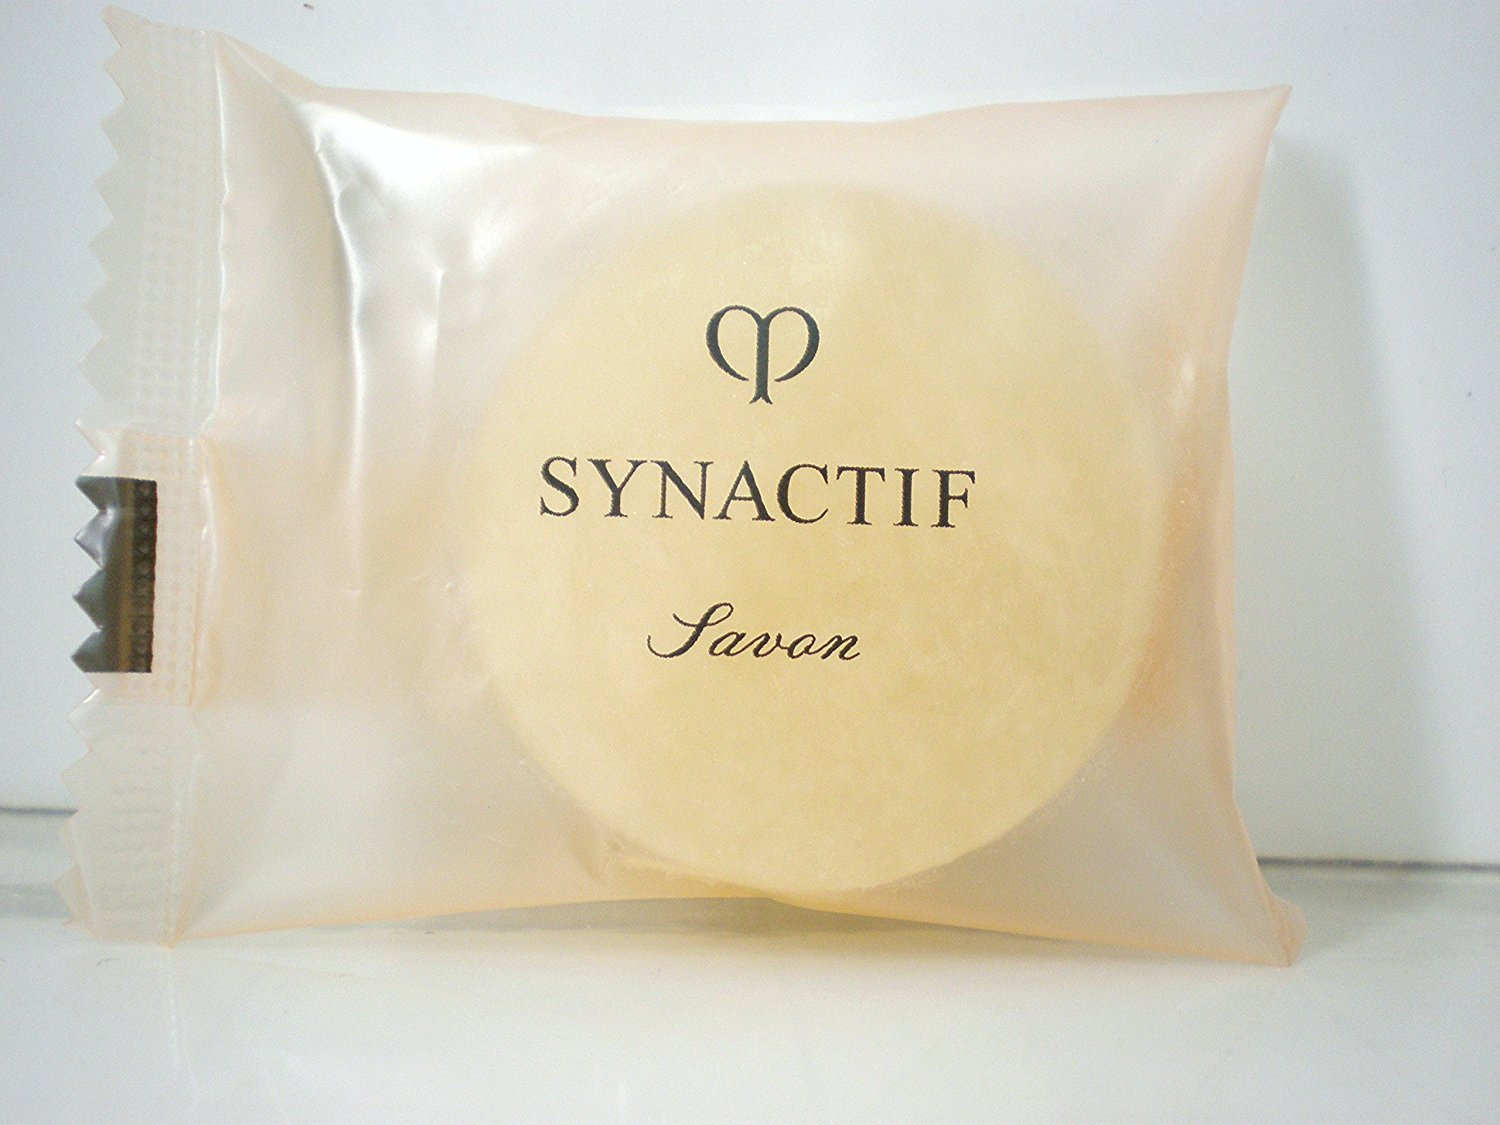 Cle De Peau SYNACTIF SOAP gentle foaming MINI 10g hard soap cake Facial FACE CLEANSER Shiseido Japan